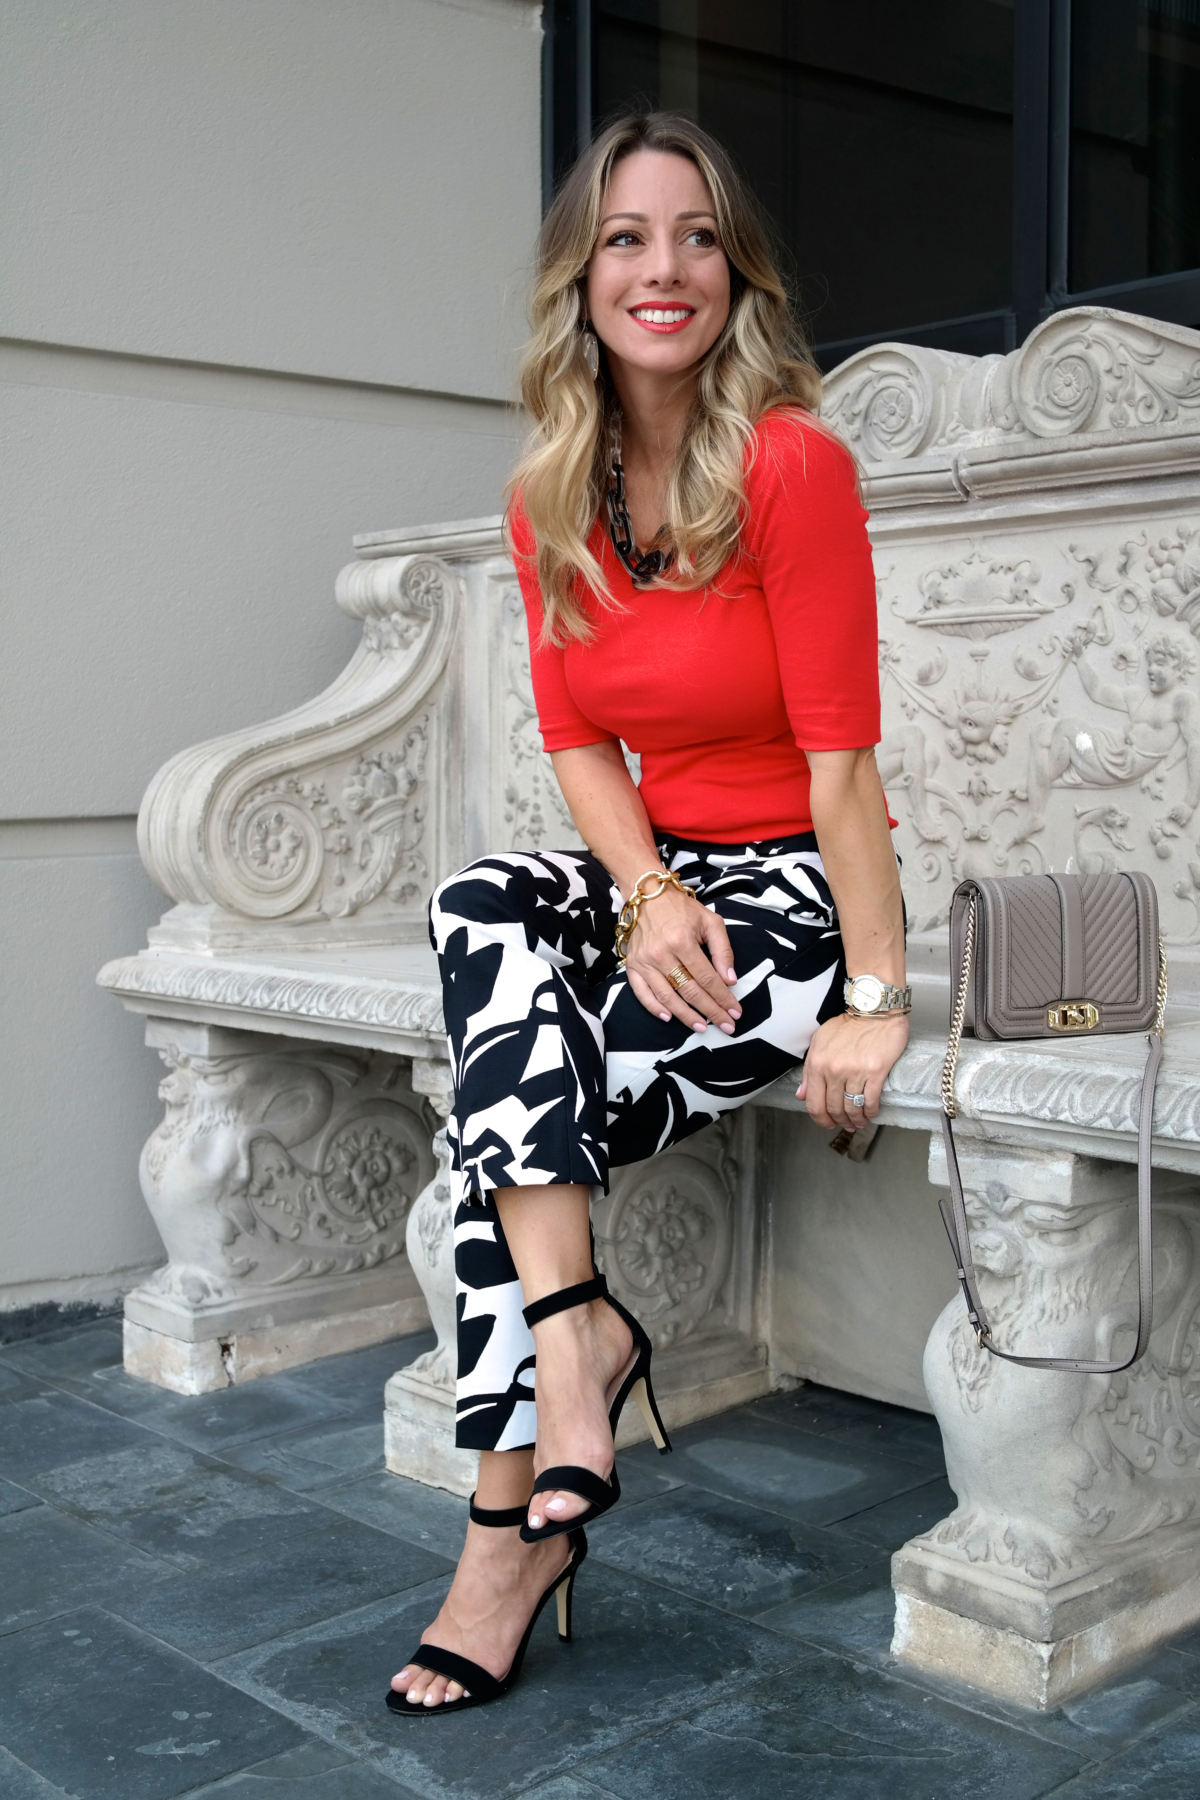 Print Pants Red Top.7